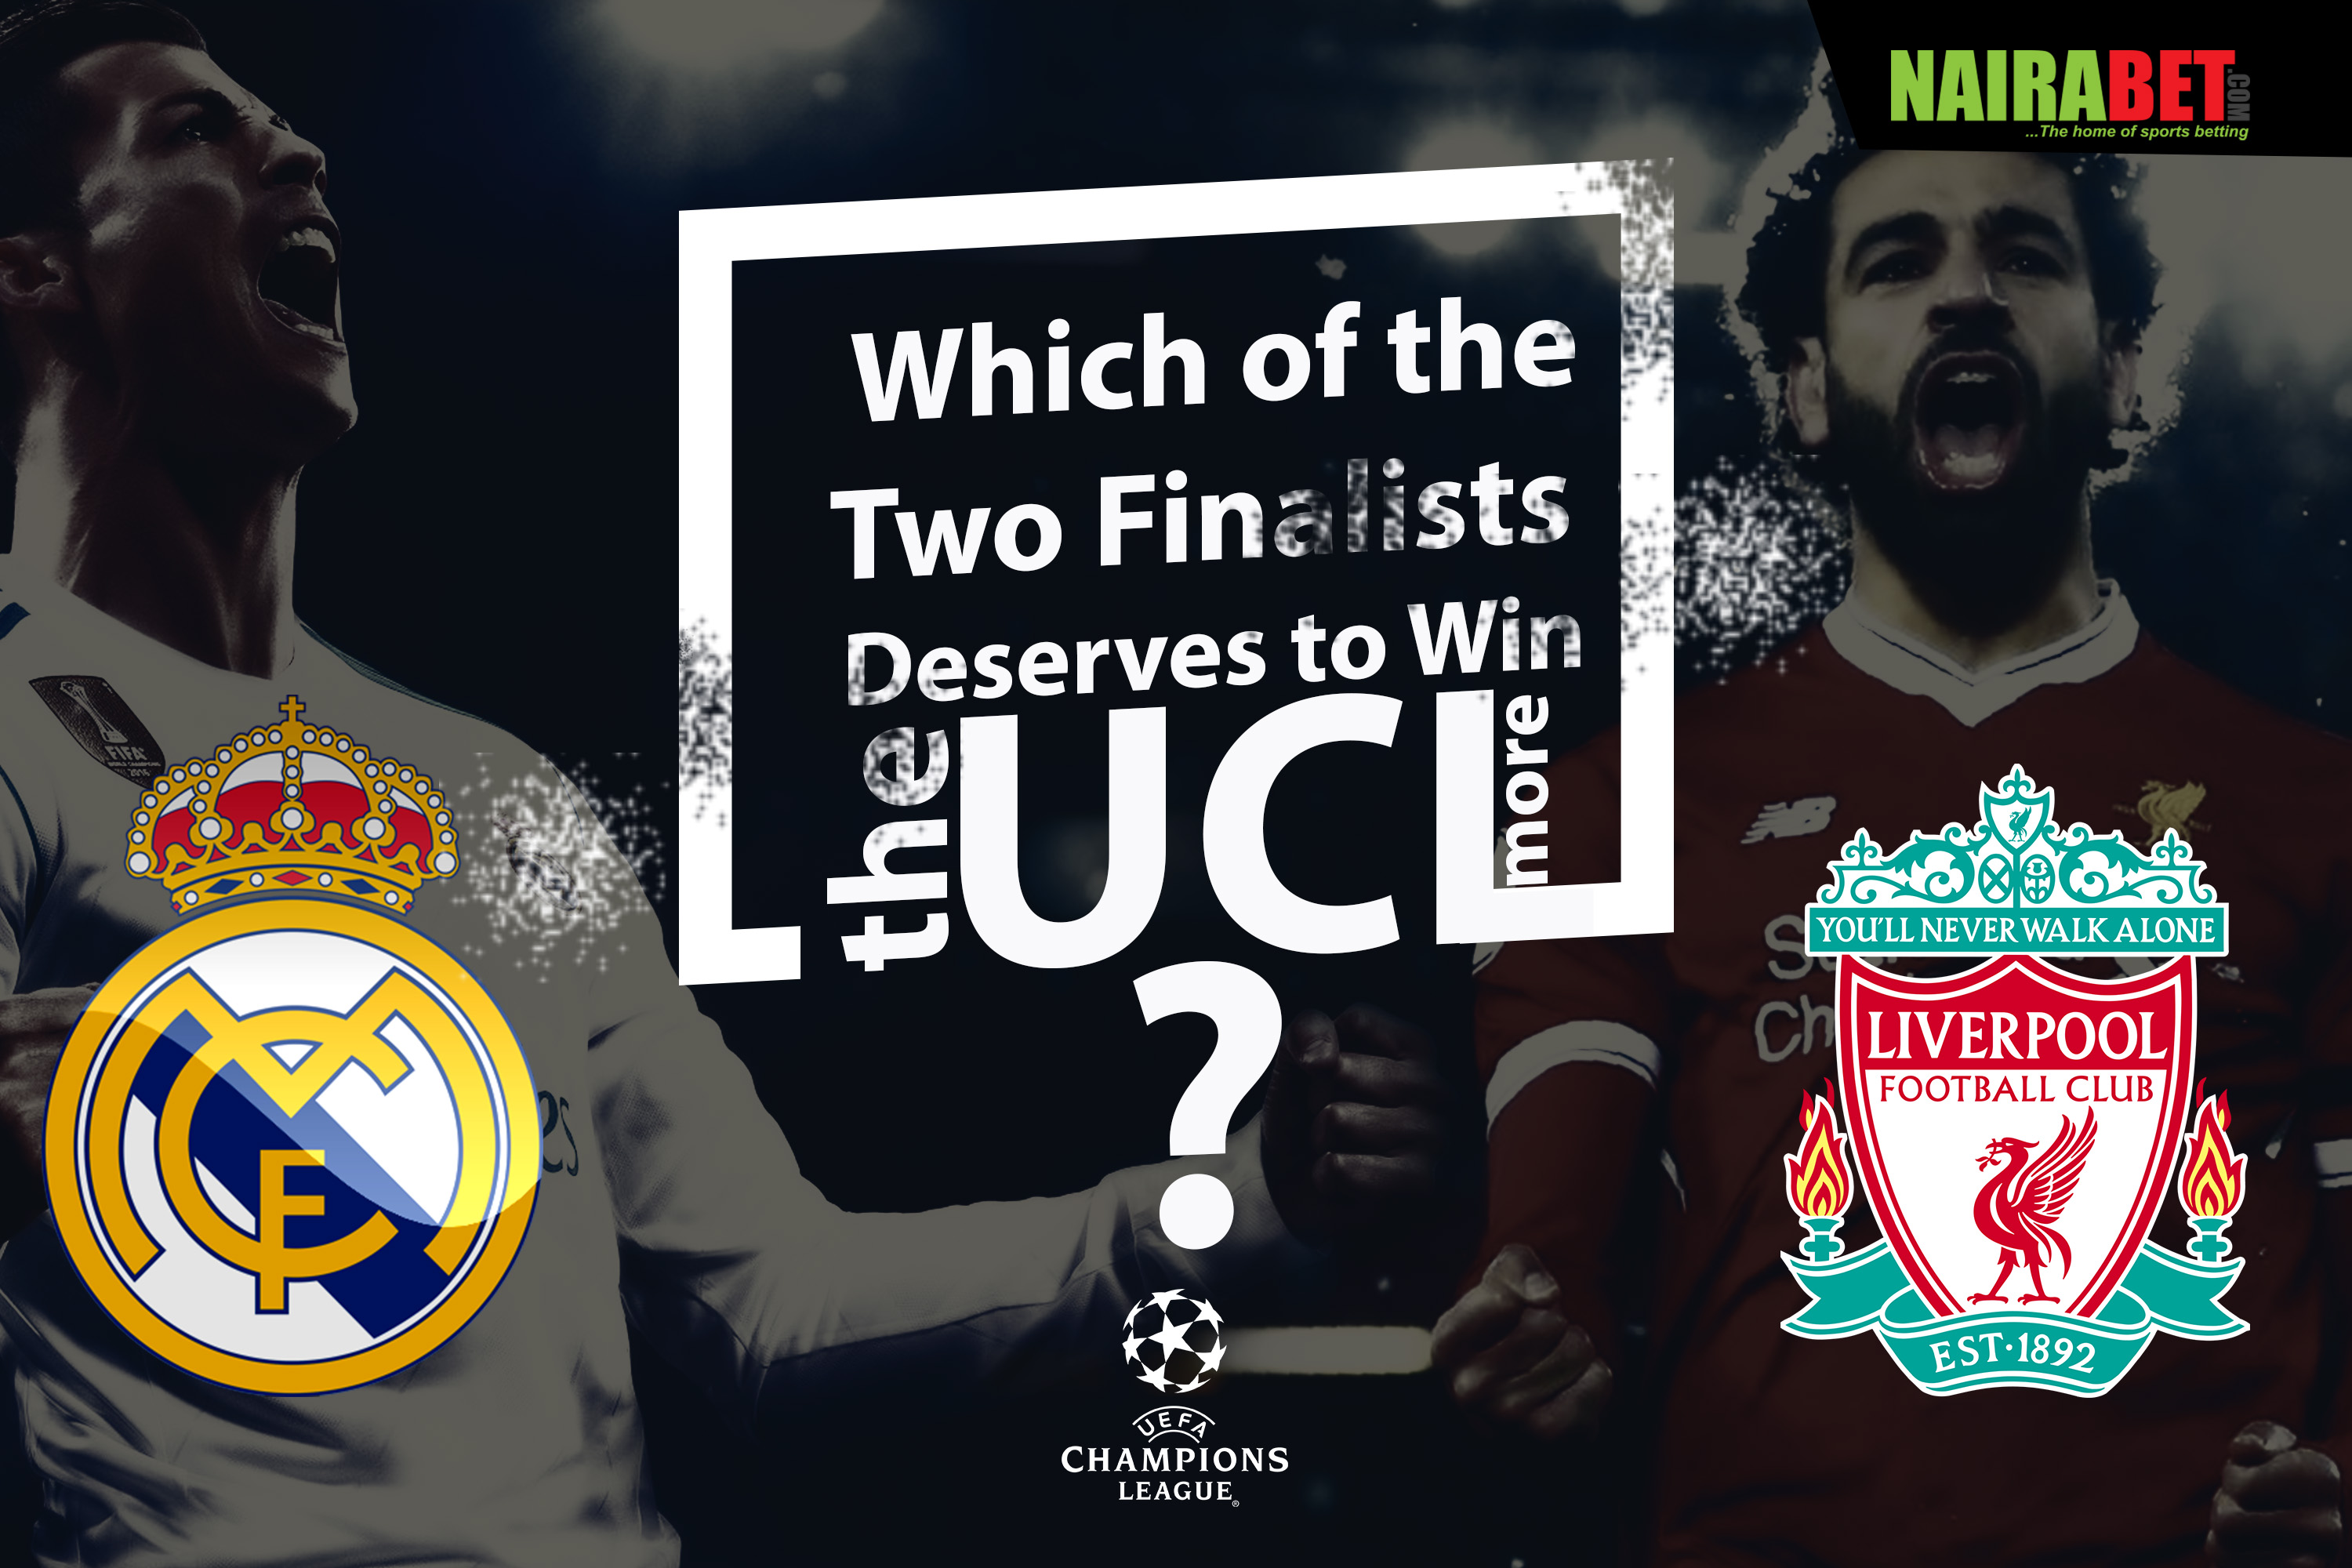 ucl finalists